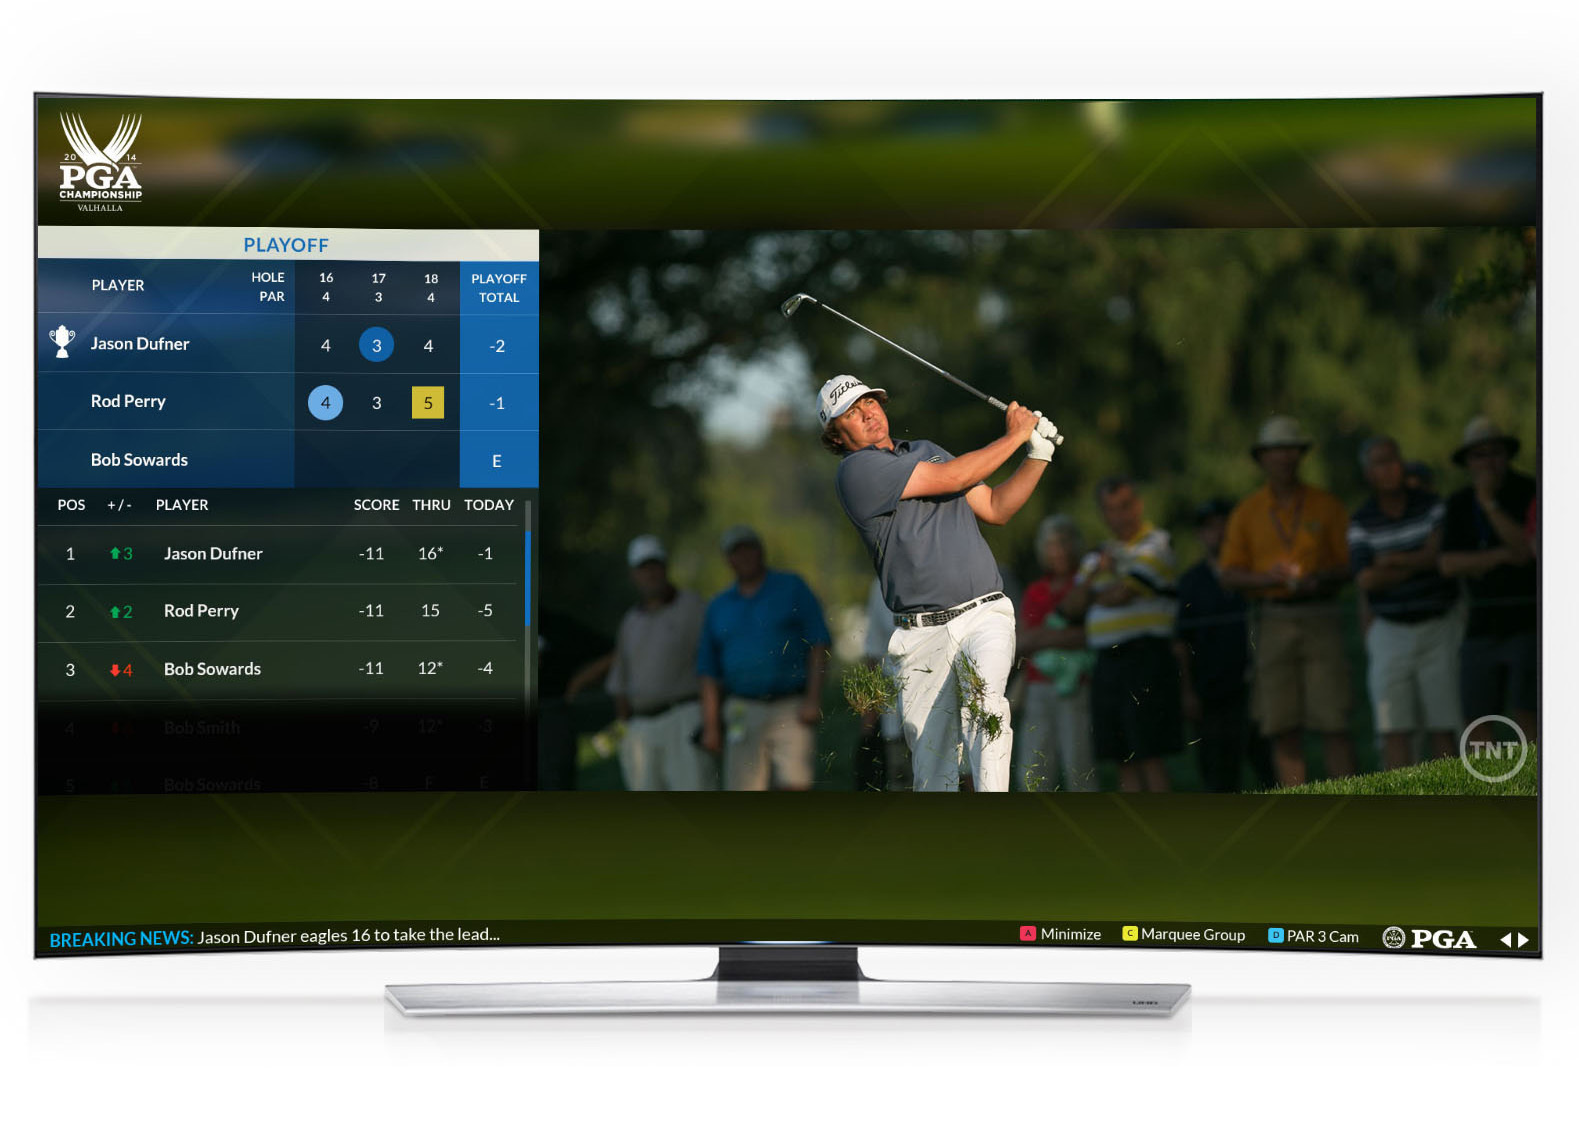 The PGA Championship TV App is the first-ever event-based golf experience app designed for the Samsung Smart TV platform, offering a new and interactive way for golf fans to immerse themselves in the PGA Championship (August 7-10). Available on 2013 and 2014 Samsung Smart TVs, like the flagship HU9000 Curved UHD TV (pictured), the new app, developed in collaboration with Turner Sports, gives viewers access to not only scoring, player and course information, but also exclusive behind-the-scenes and tournament-related content from the PGA Championship. (Photo: Business Wire)